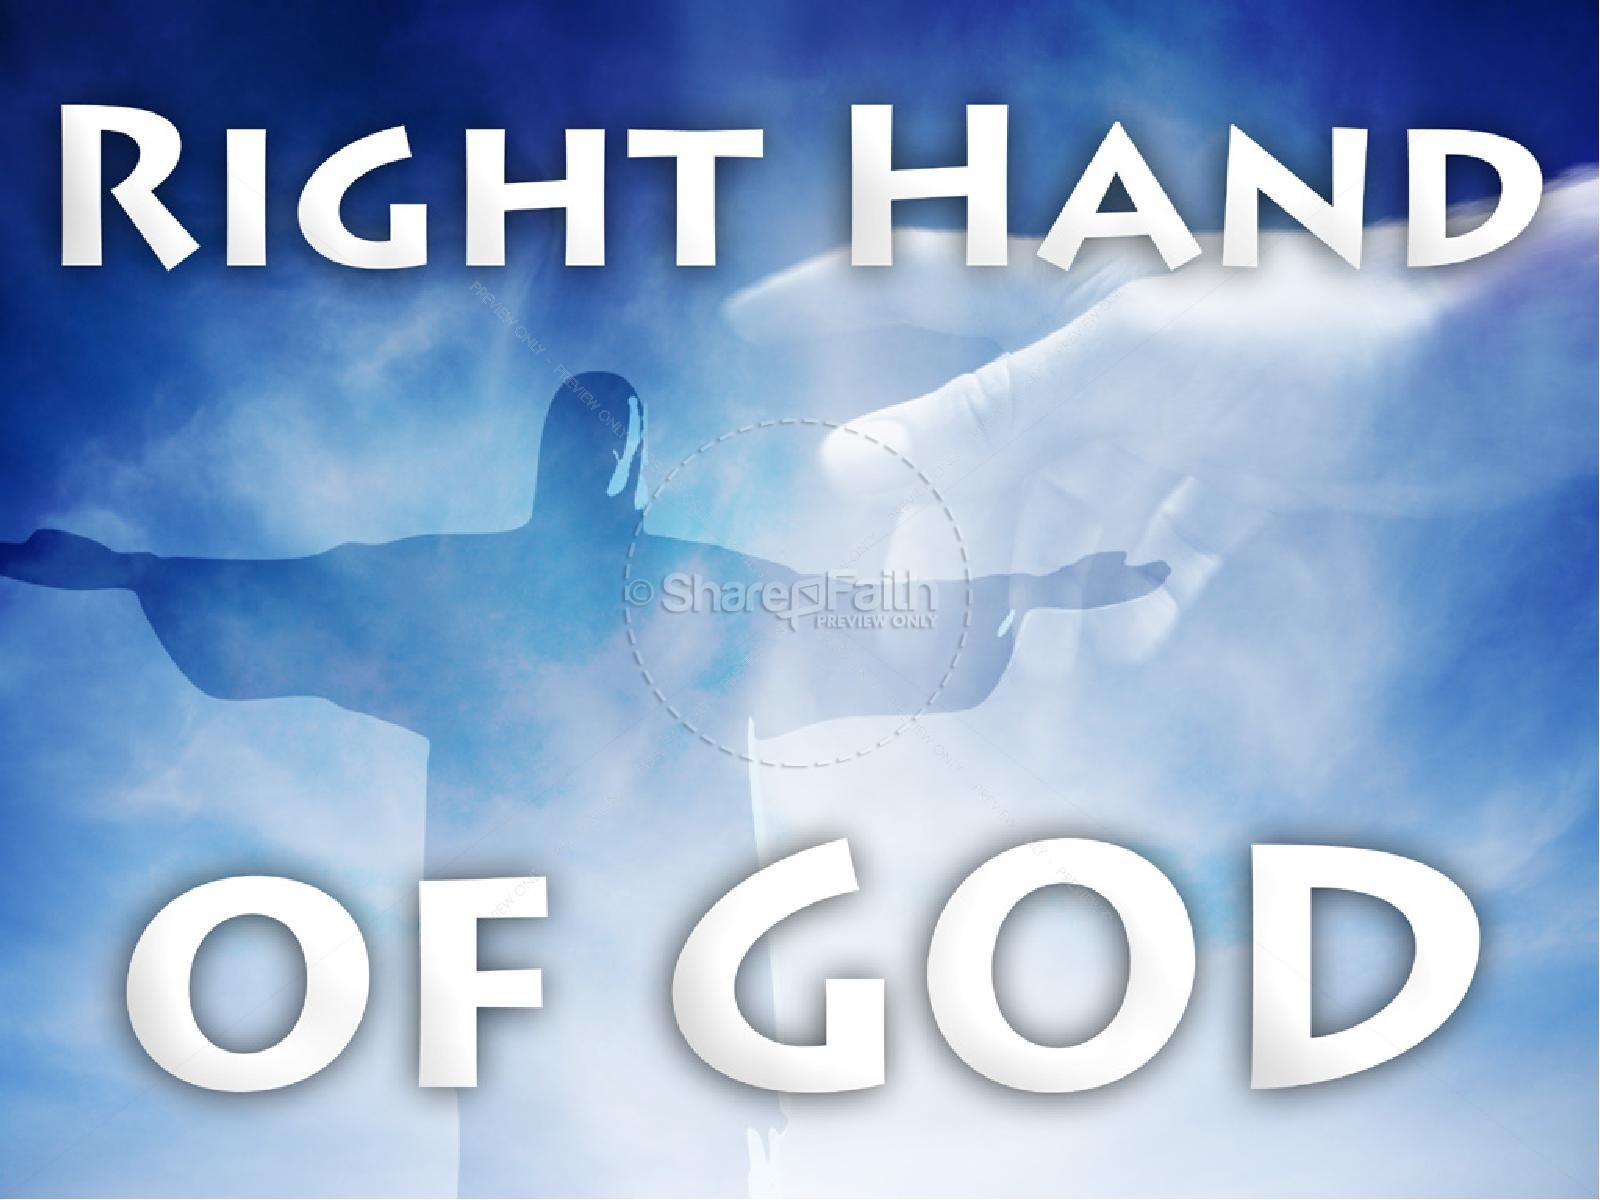 Right Hand of God